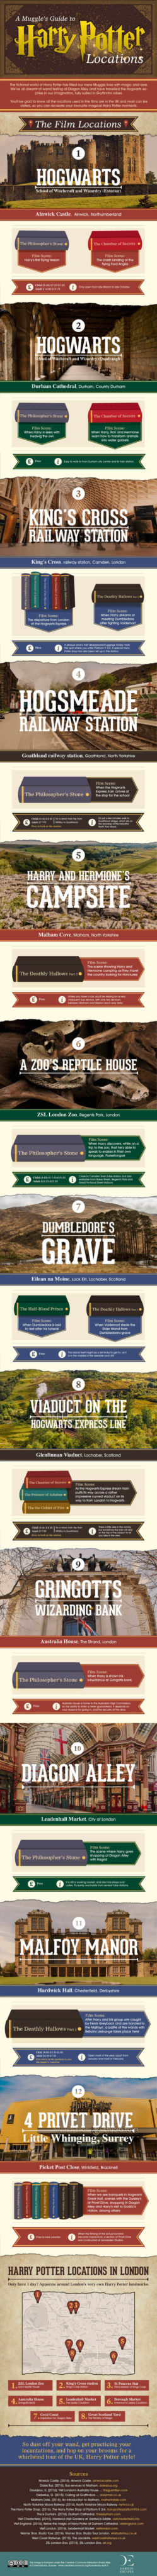 Infographic: A Muggle's Guide to Visiting Harry Potter Locations Infographic